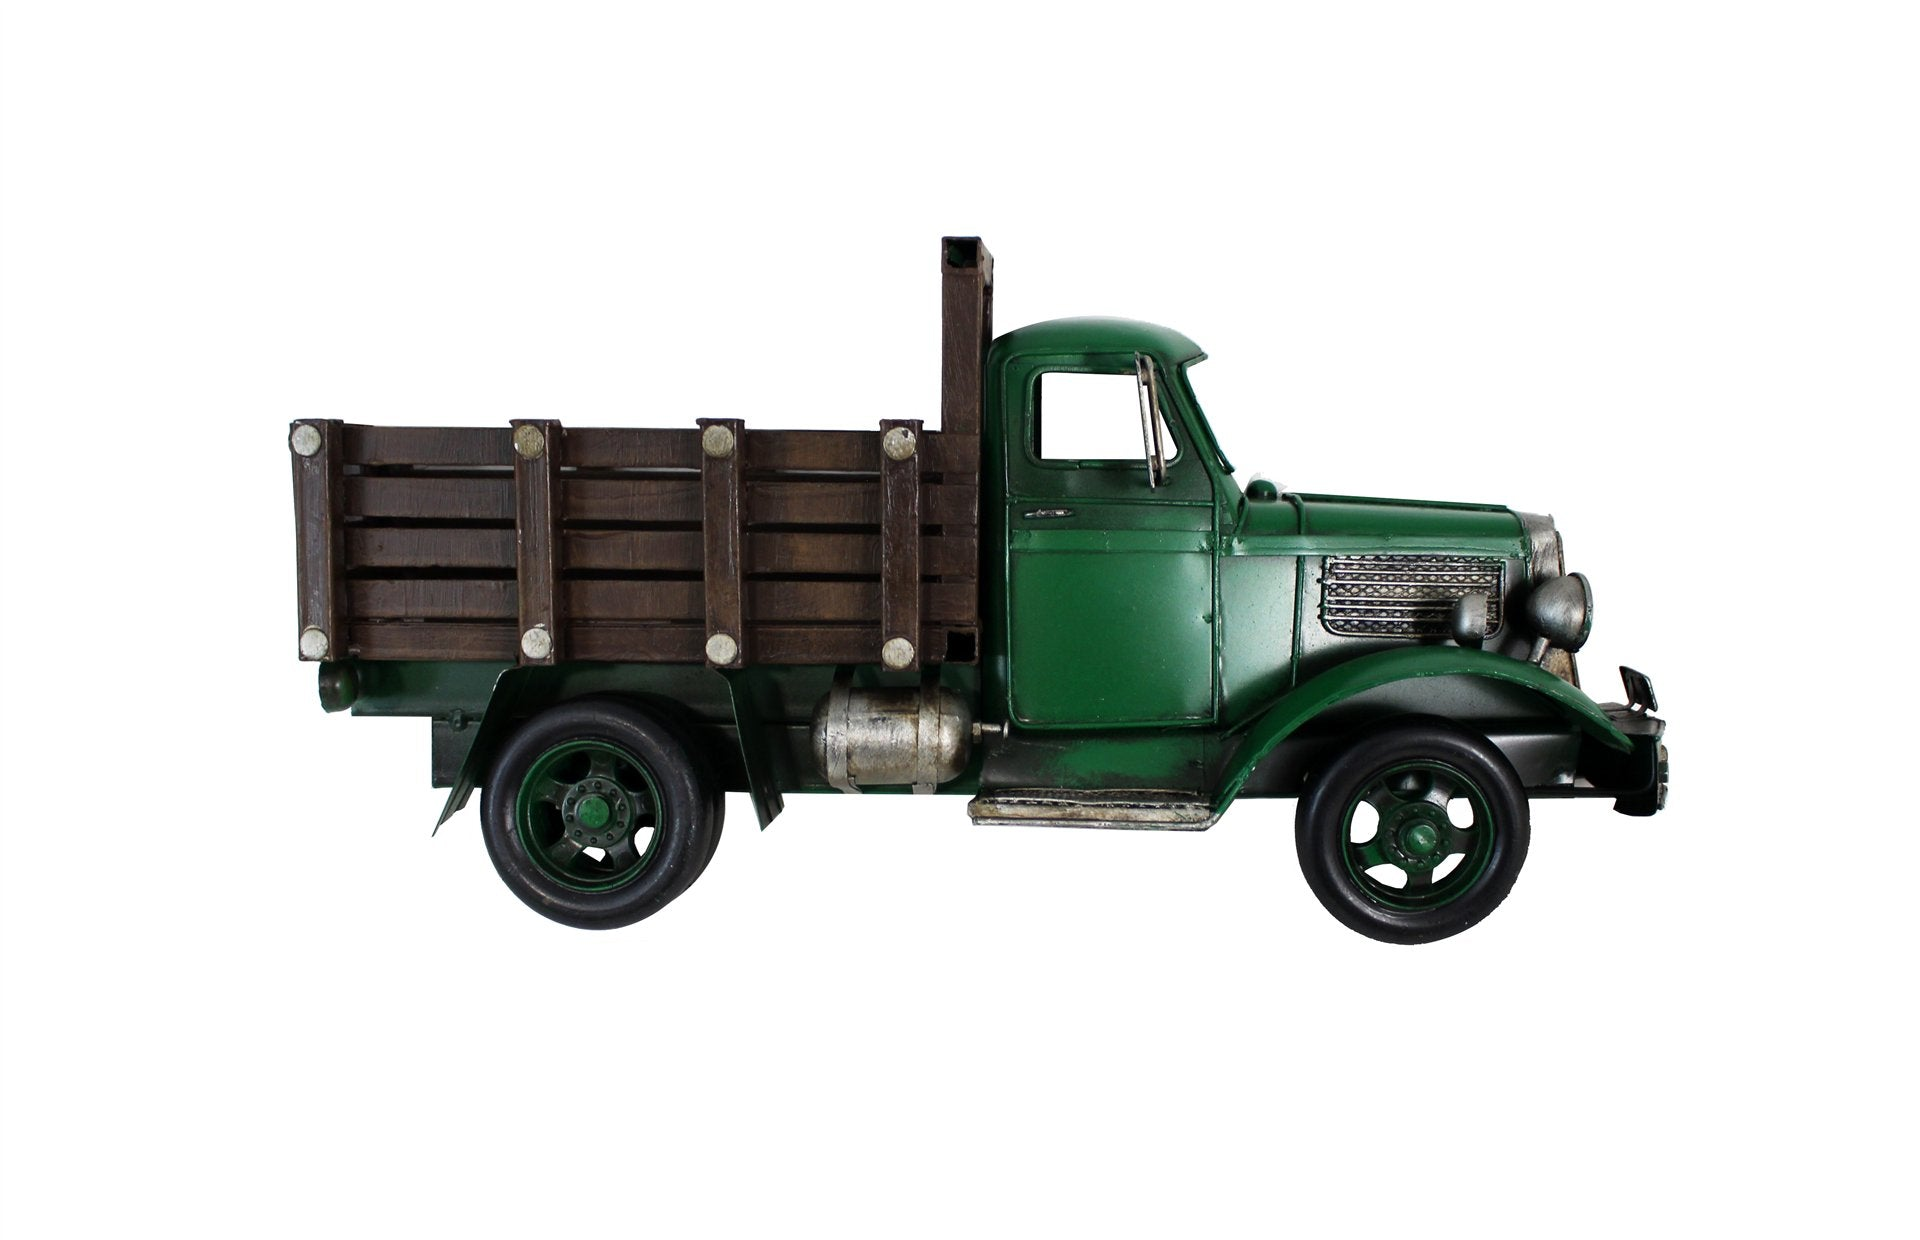 MINIATURE GREEN FARM TRUCK WITH WALL HANGER